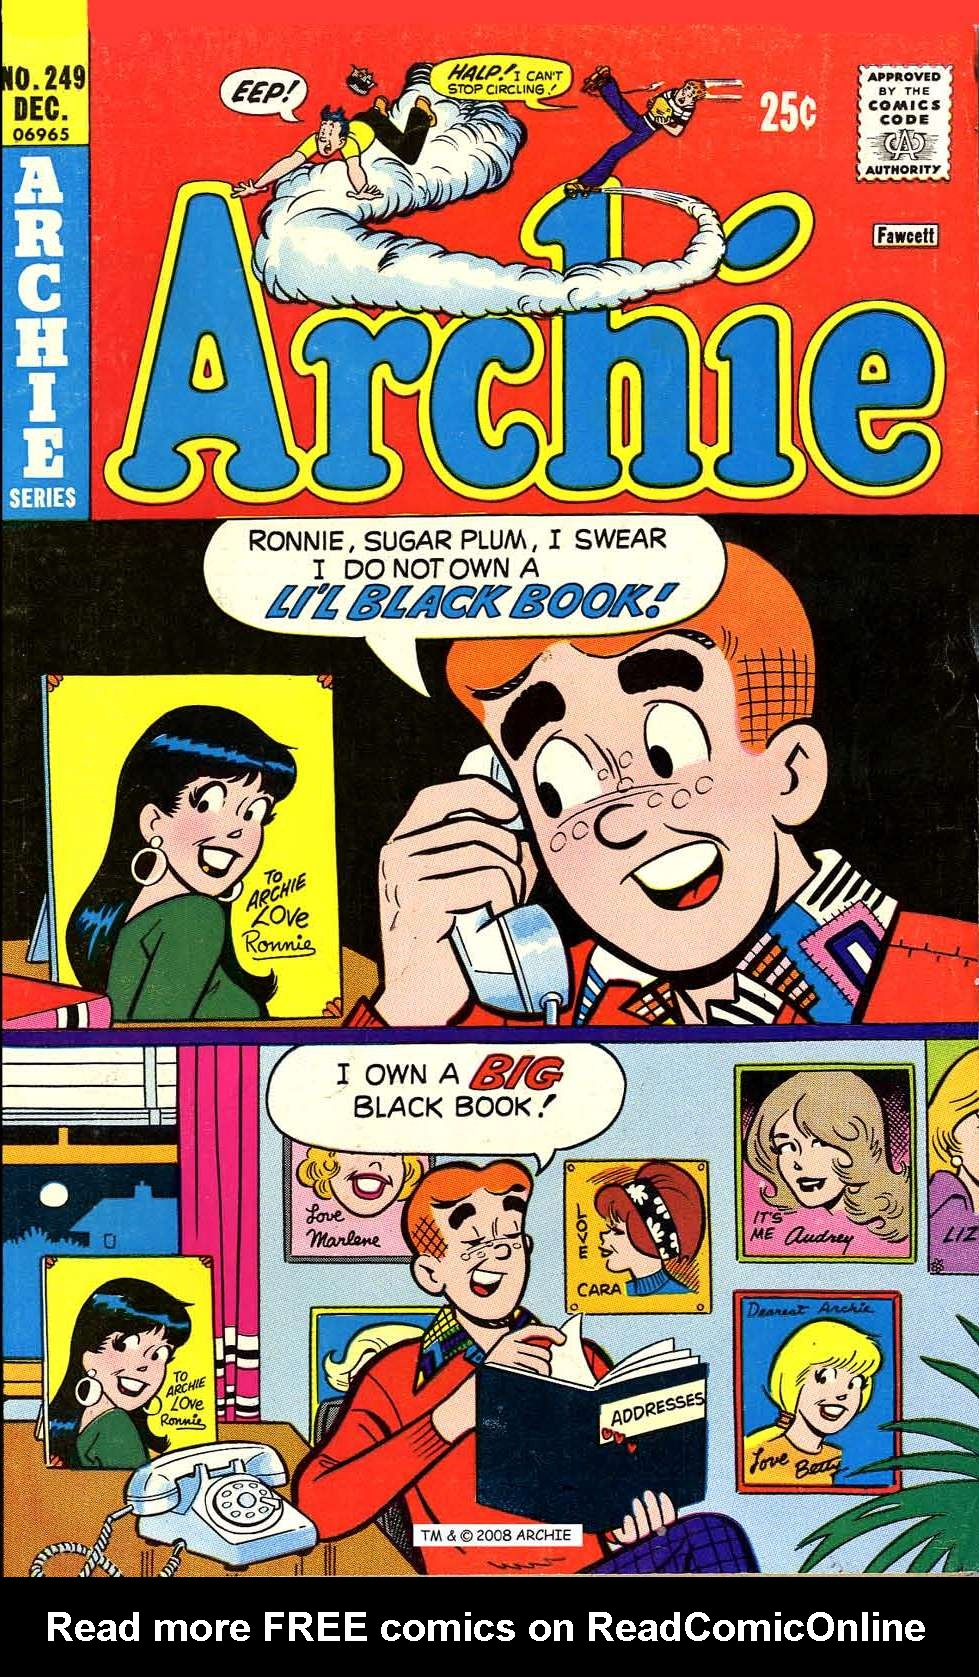 Read online Archie (1960) comic -  Issue #249 - 1